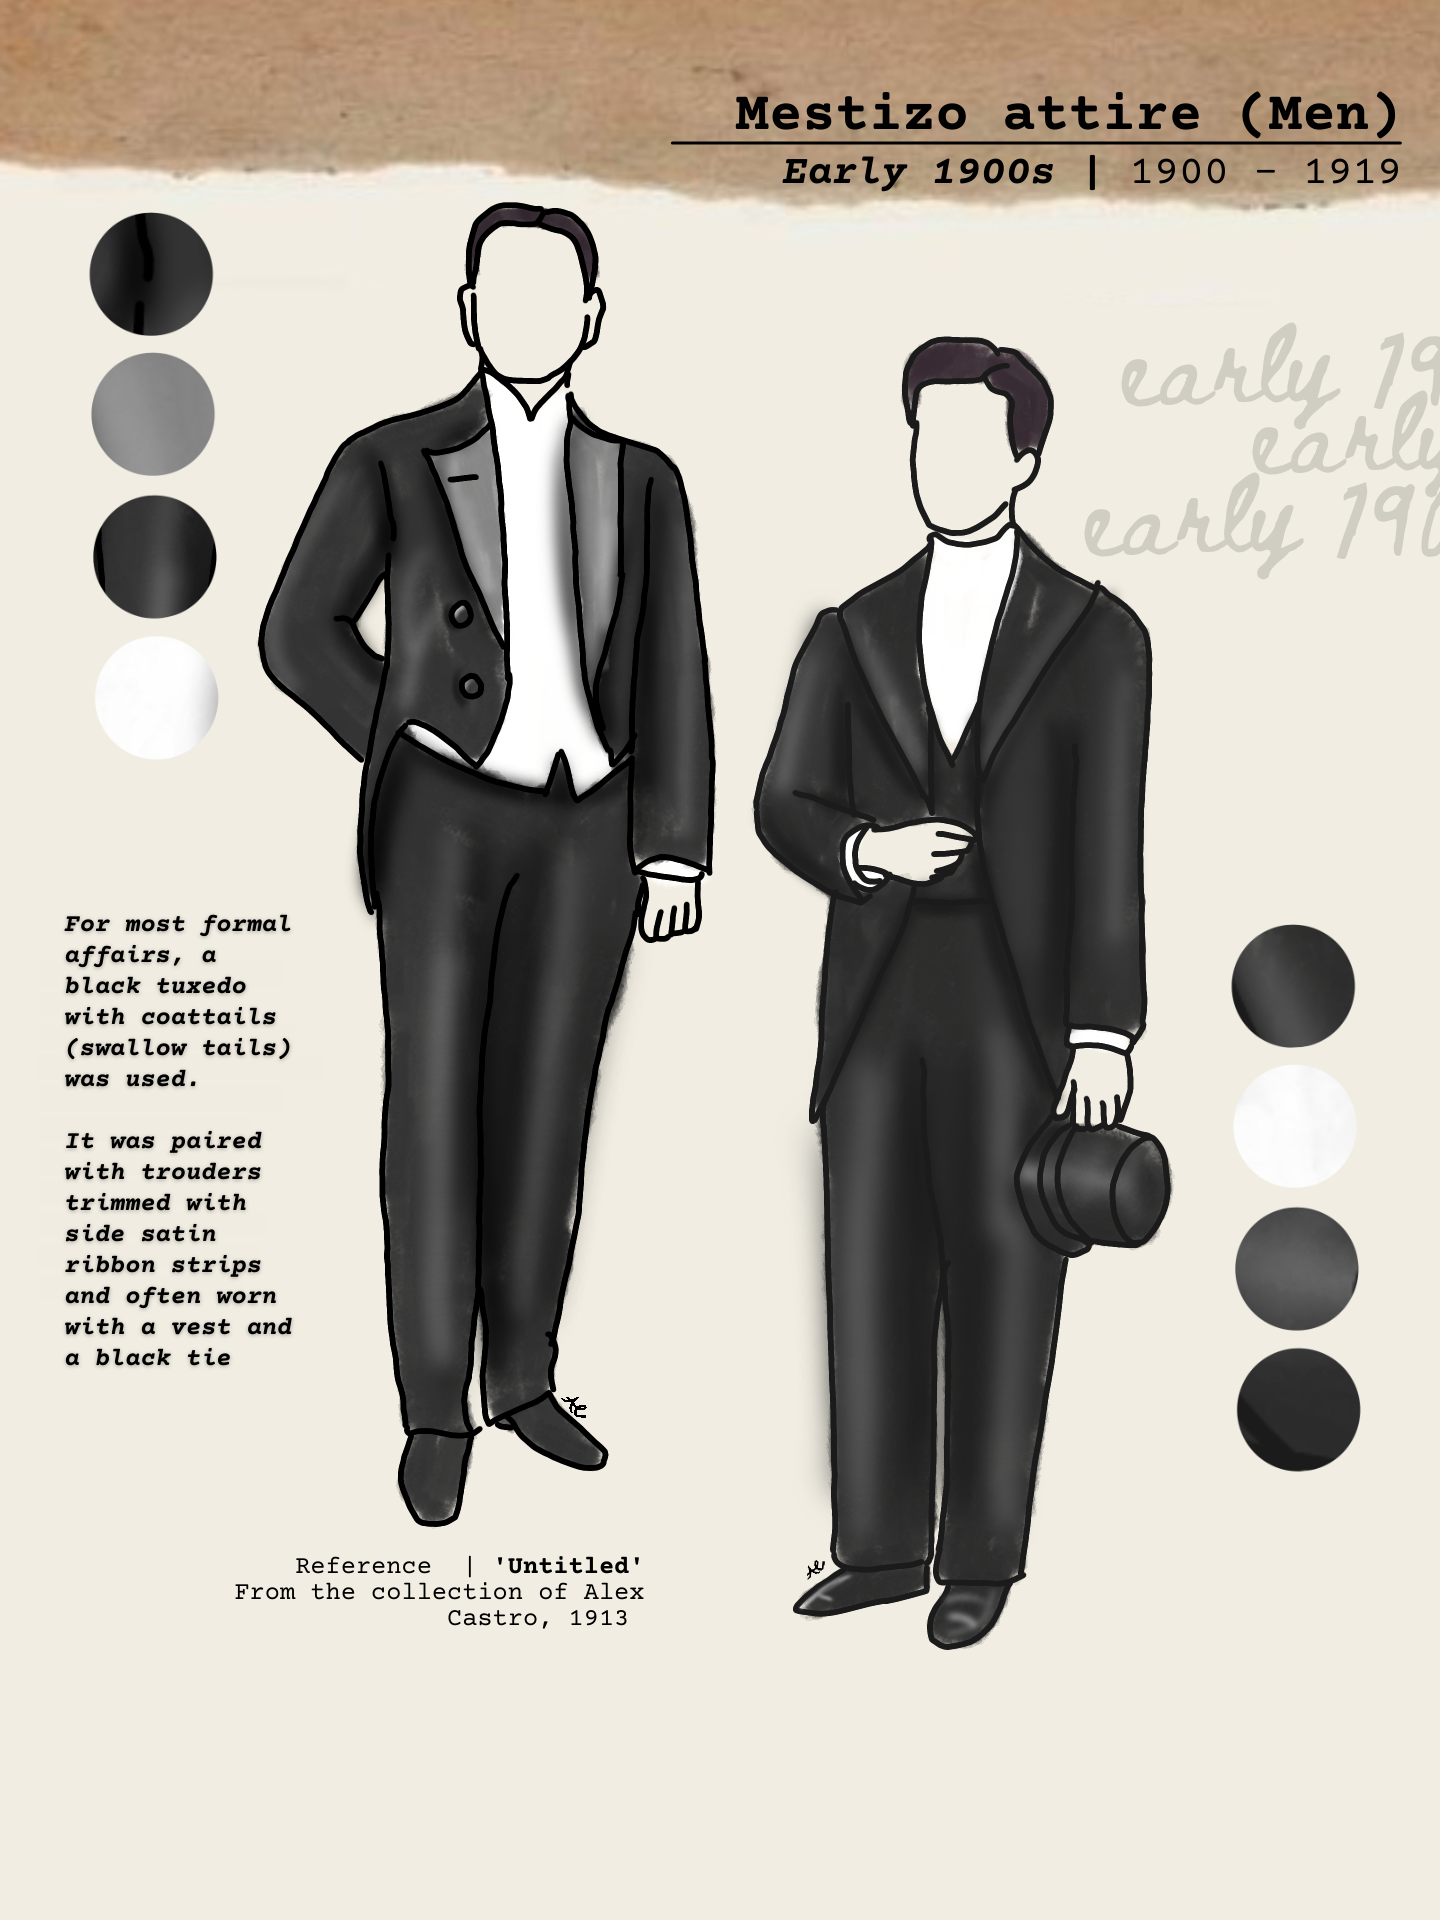 The Tuxedo for Formal Occasions